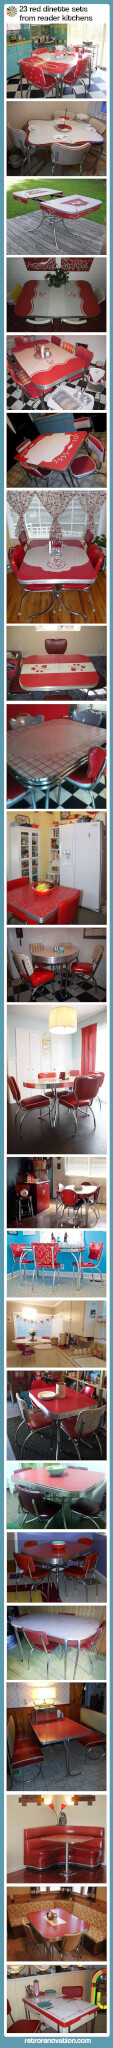 23-retro-red-dinette-sets